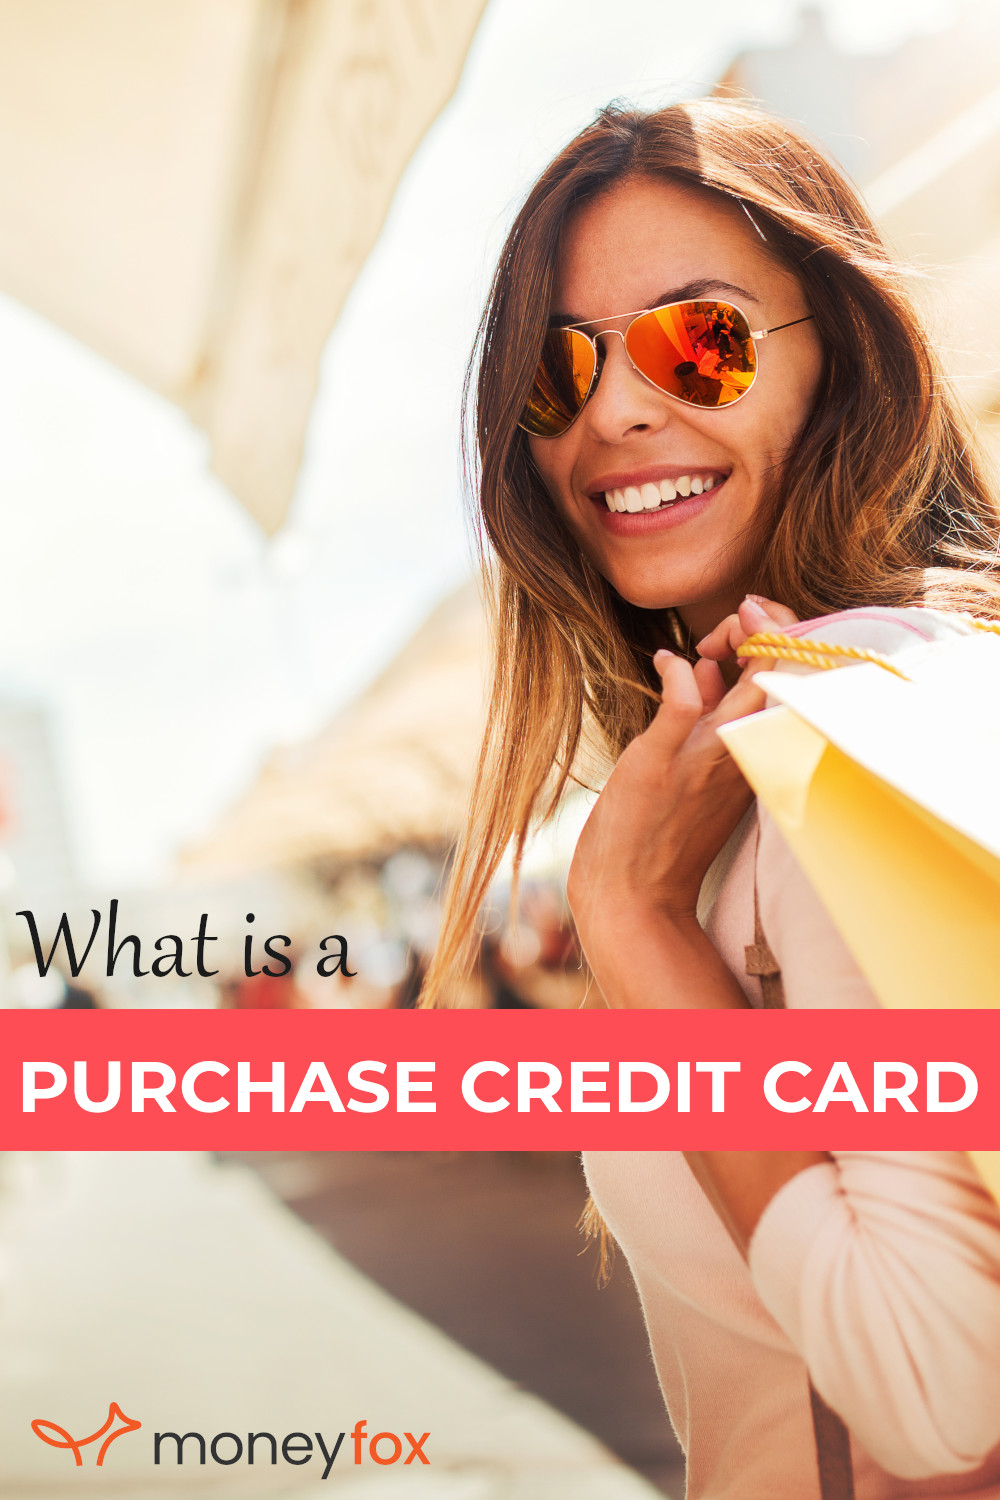 What is a purchase credit card - the complete guide, insight on how best to use them and key information.